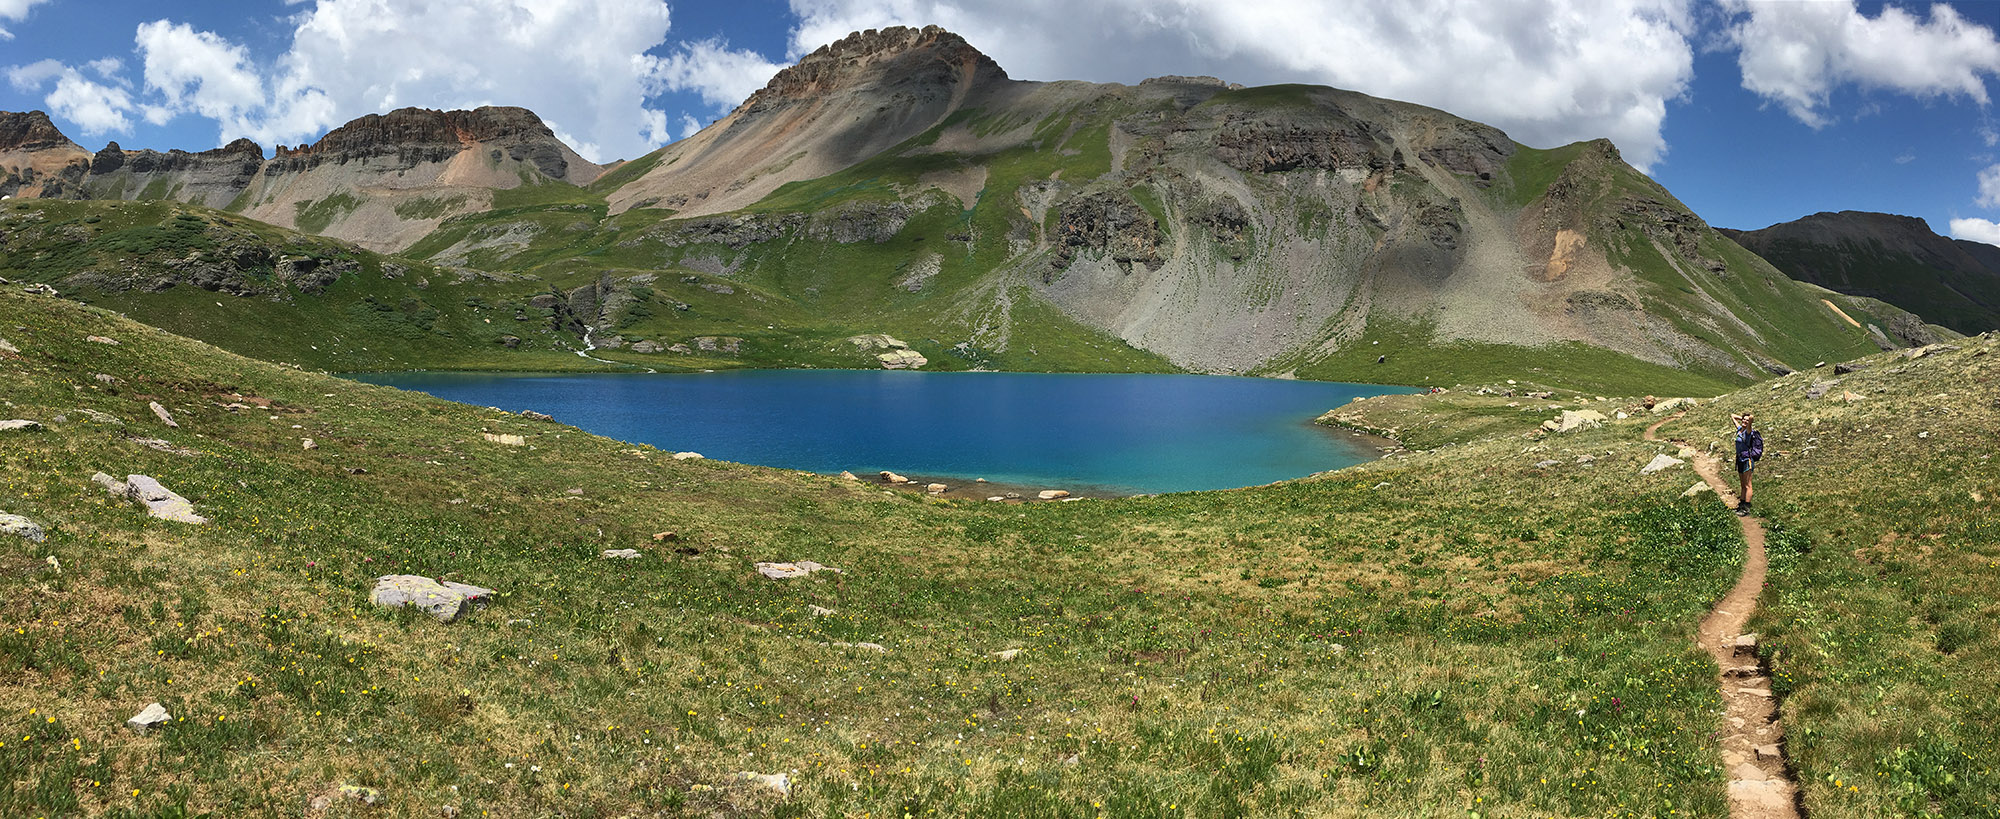 July: Clear skies and all the wildflowers at  Ice Lake  in Colorado